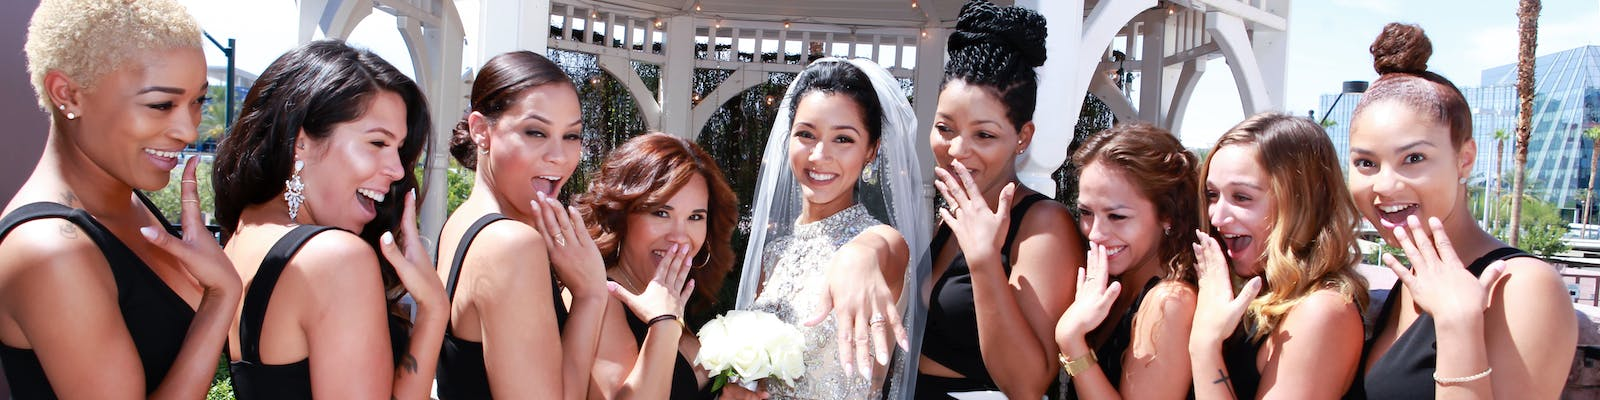 Bride shows of her ring as her bridesmaids look in awe